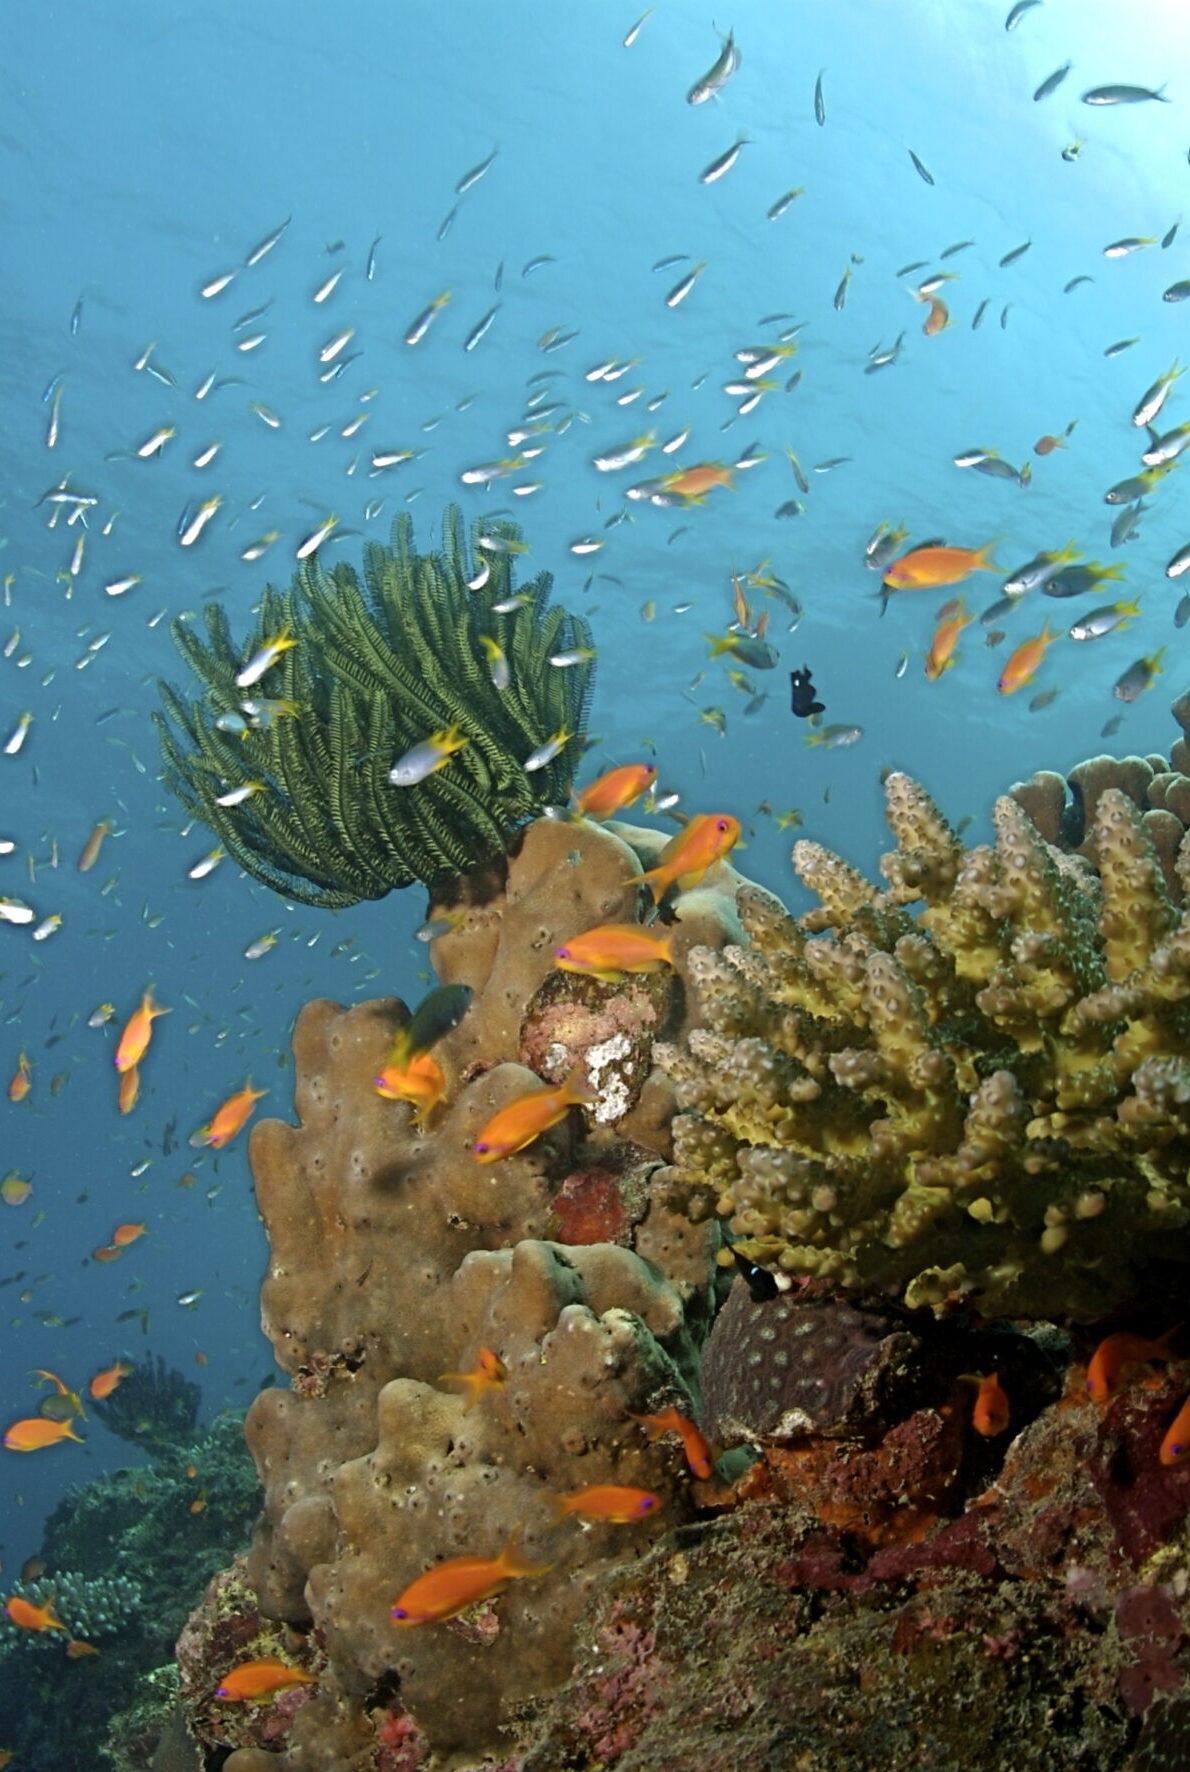 A colorful coral reef, surrounded by fish